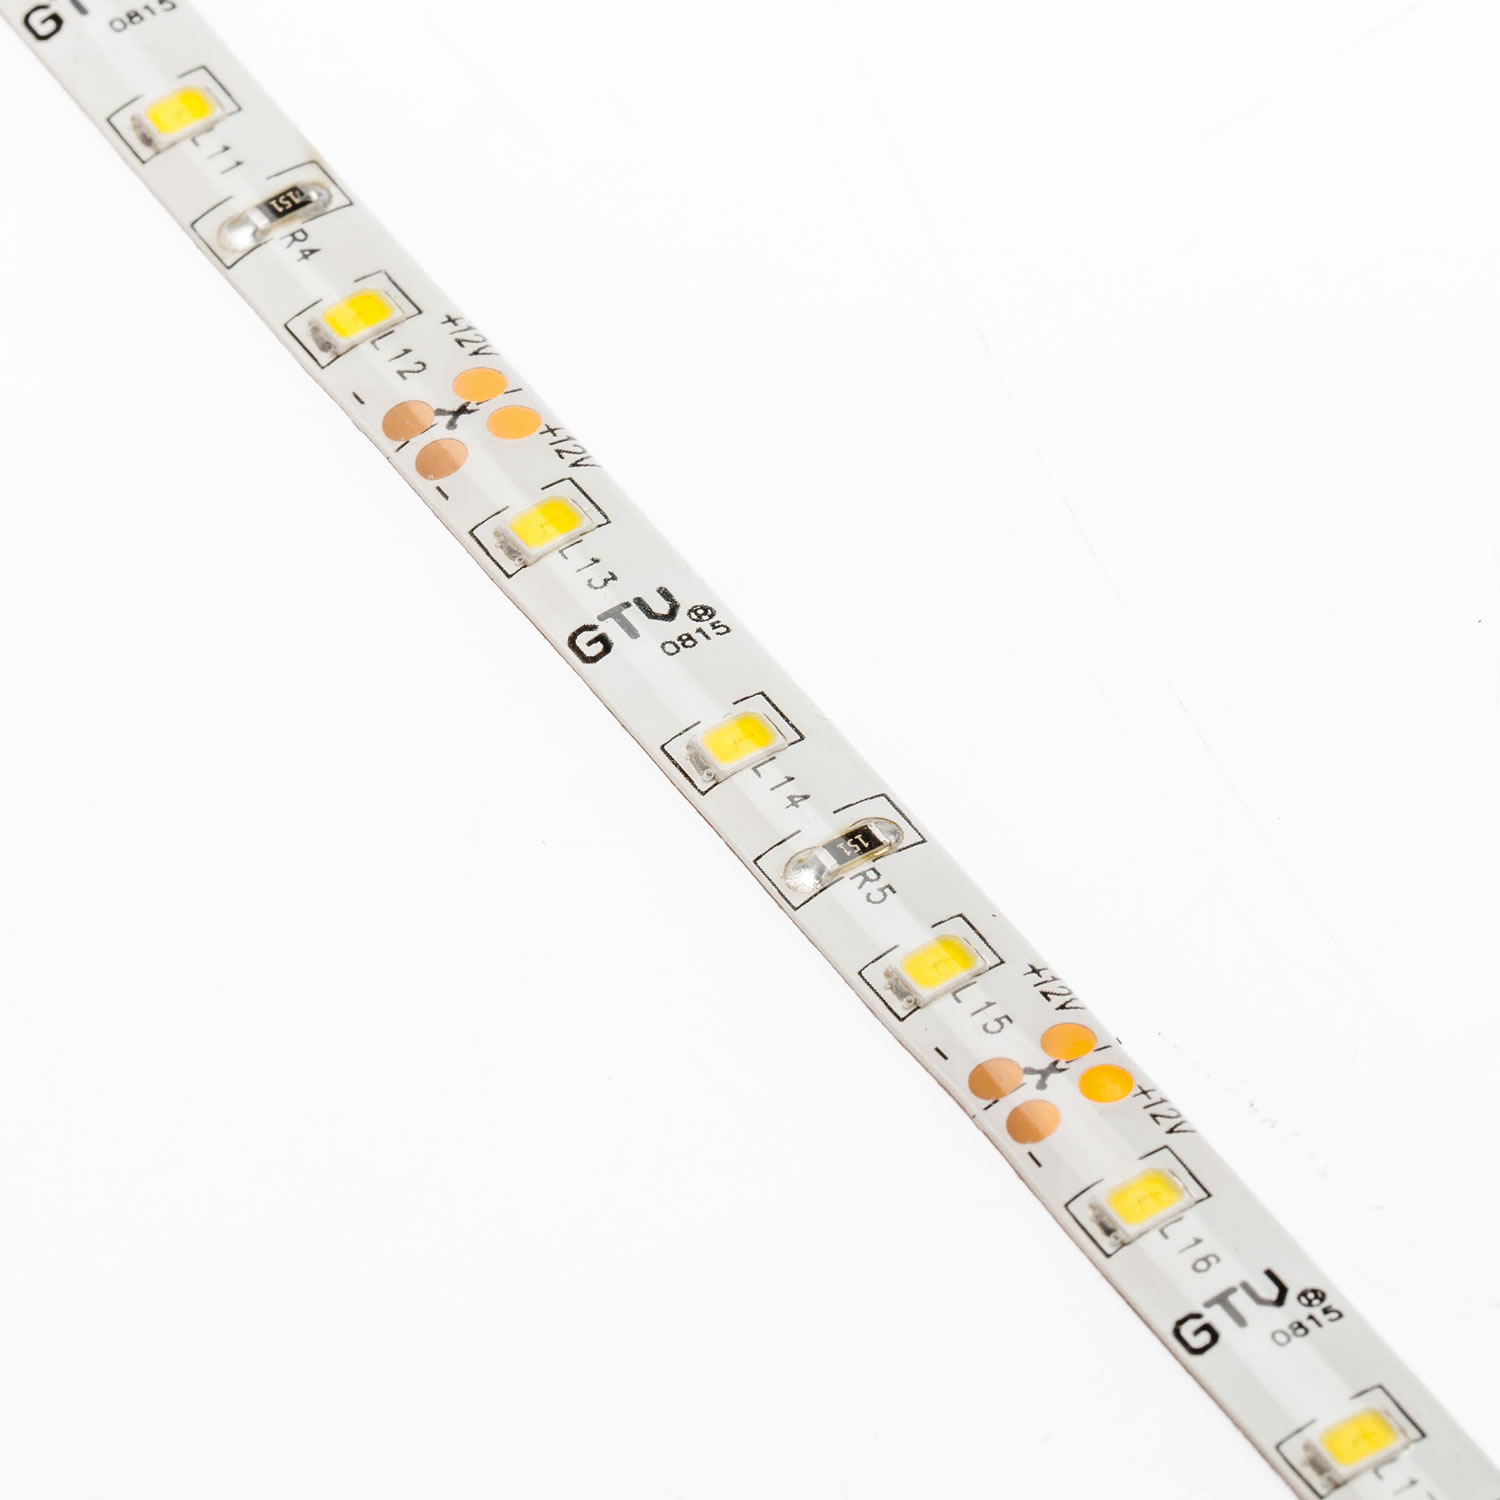 Eclairage Led Ruban Ruban Led Smd2835 Bobine De 5 MÈtres Ip65 Ruban Led Et